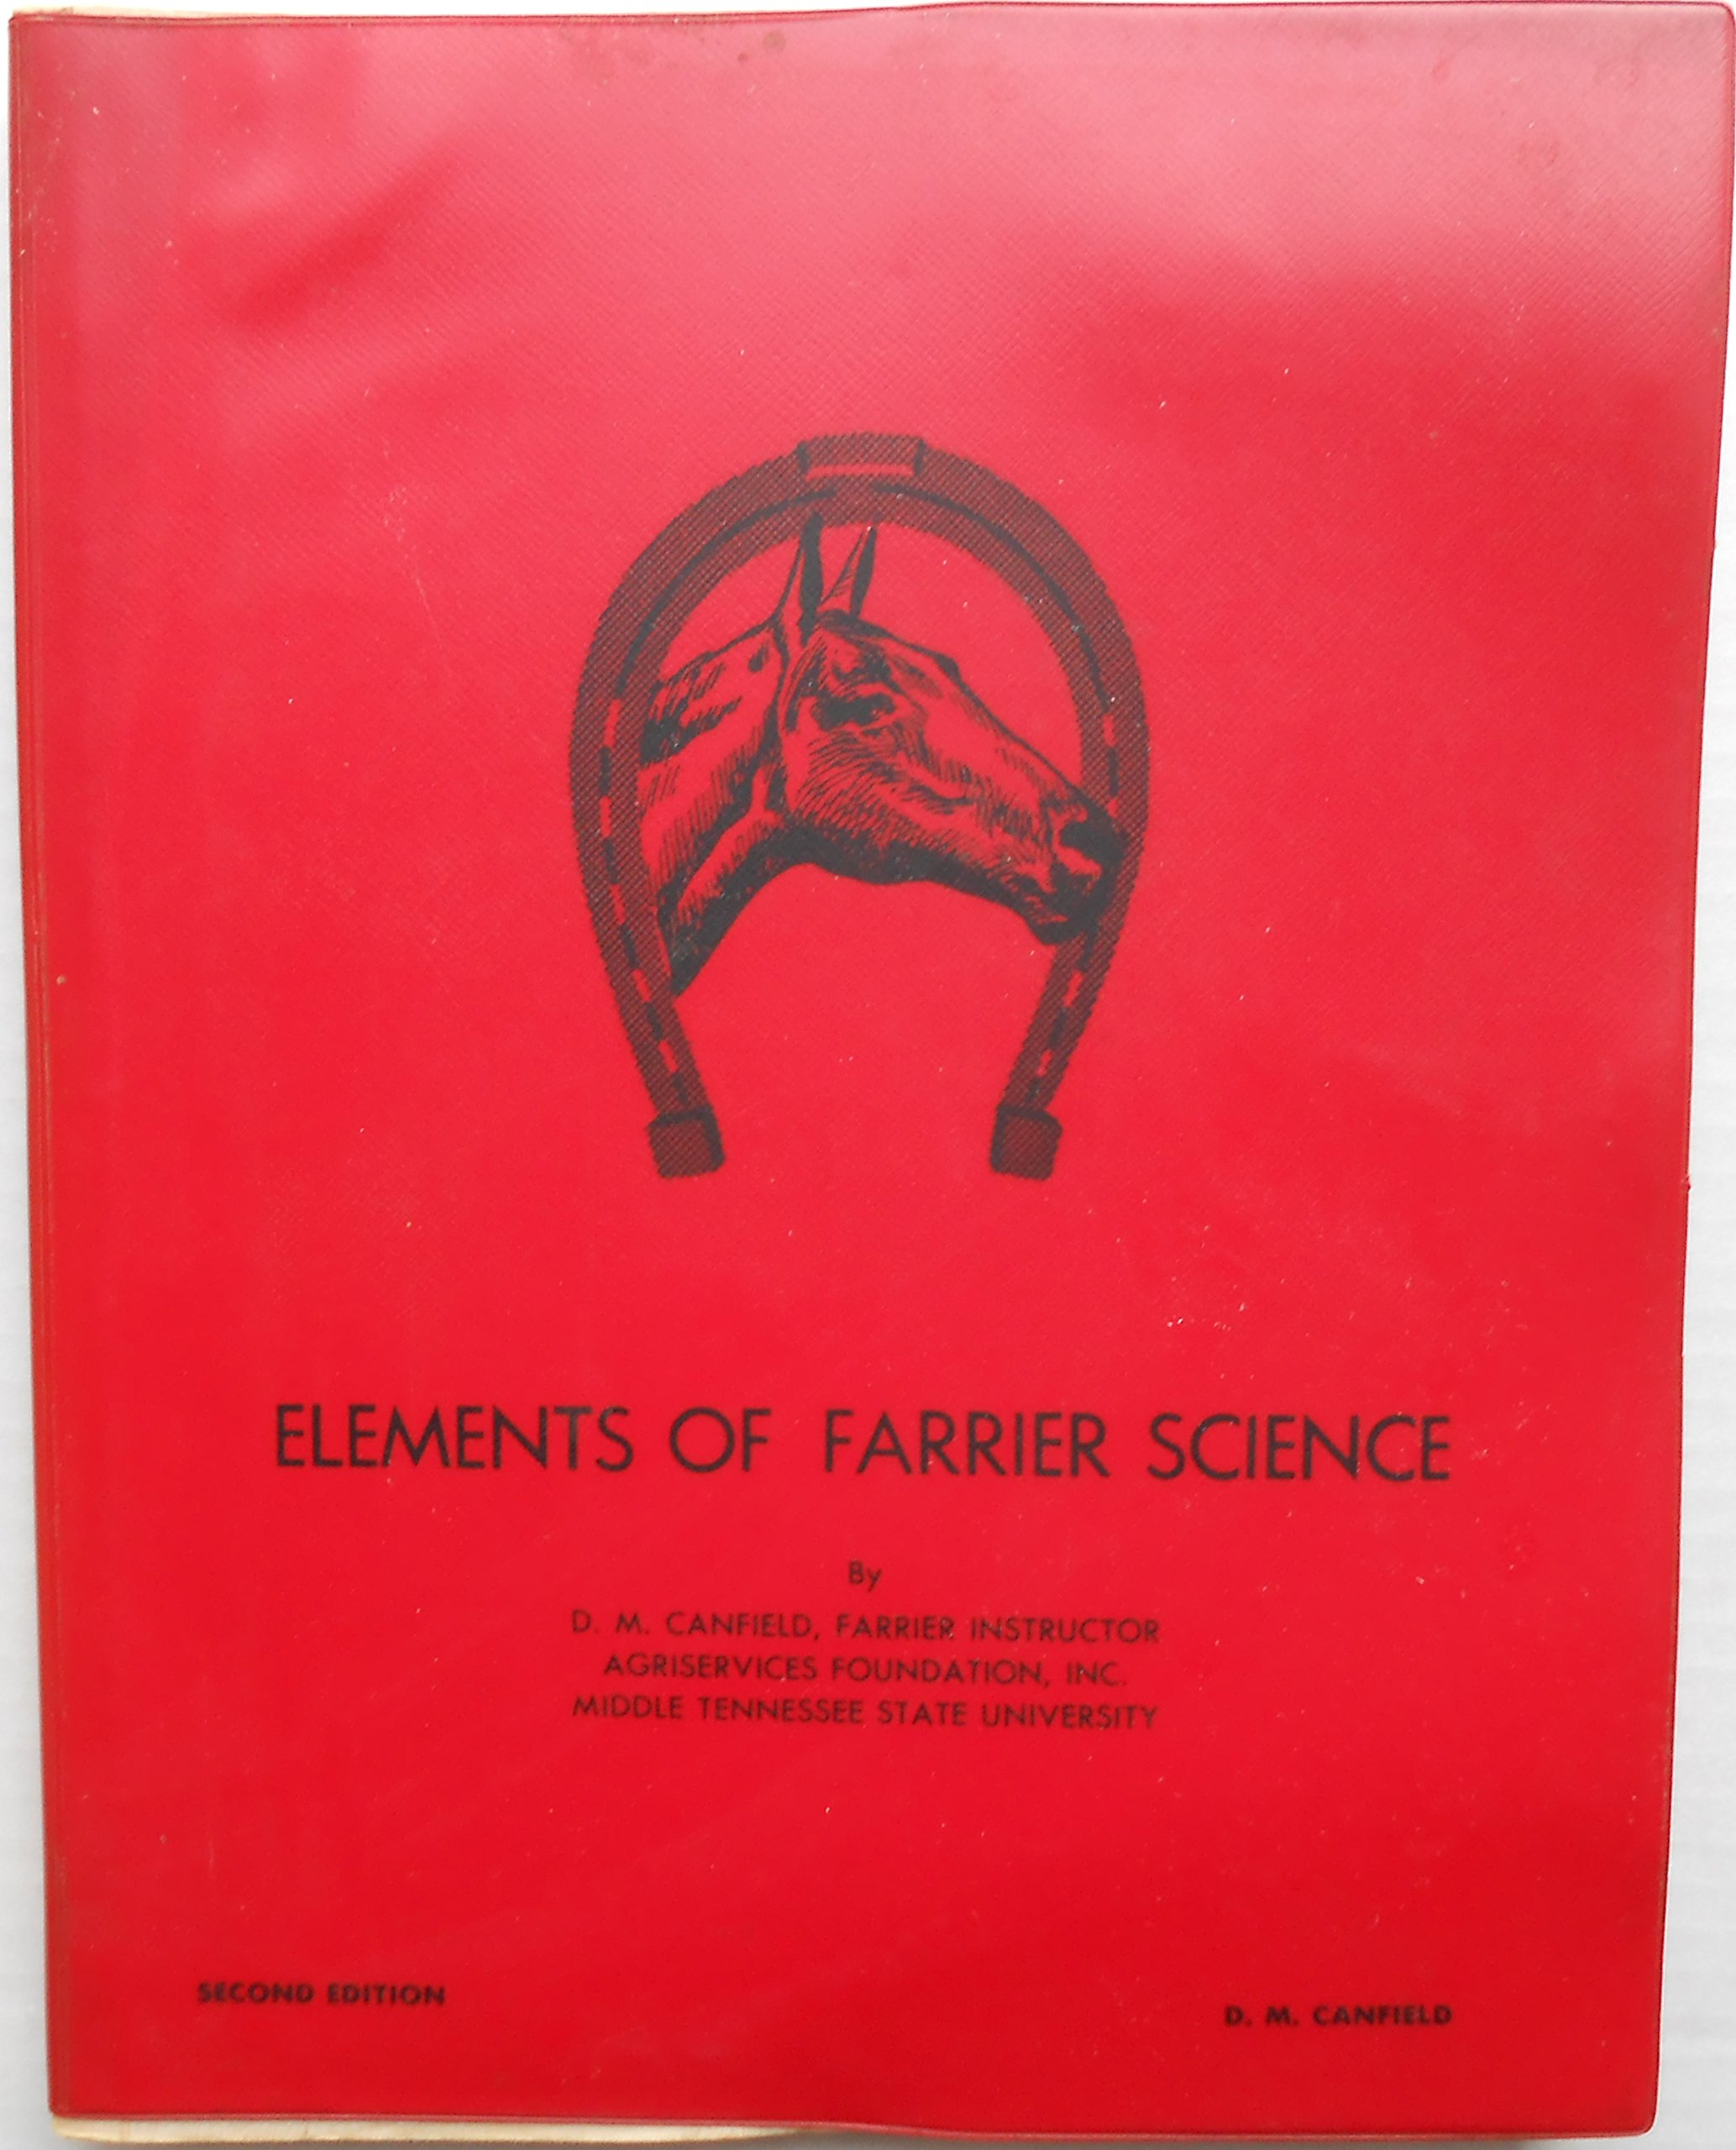 Elements of Farrier Science, D. M. Canfield